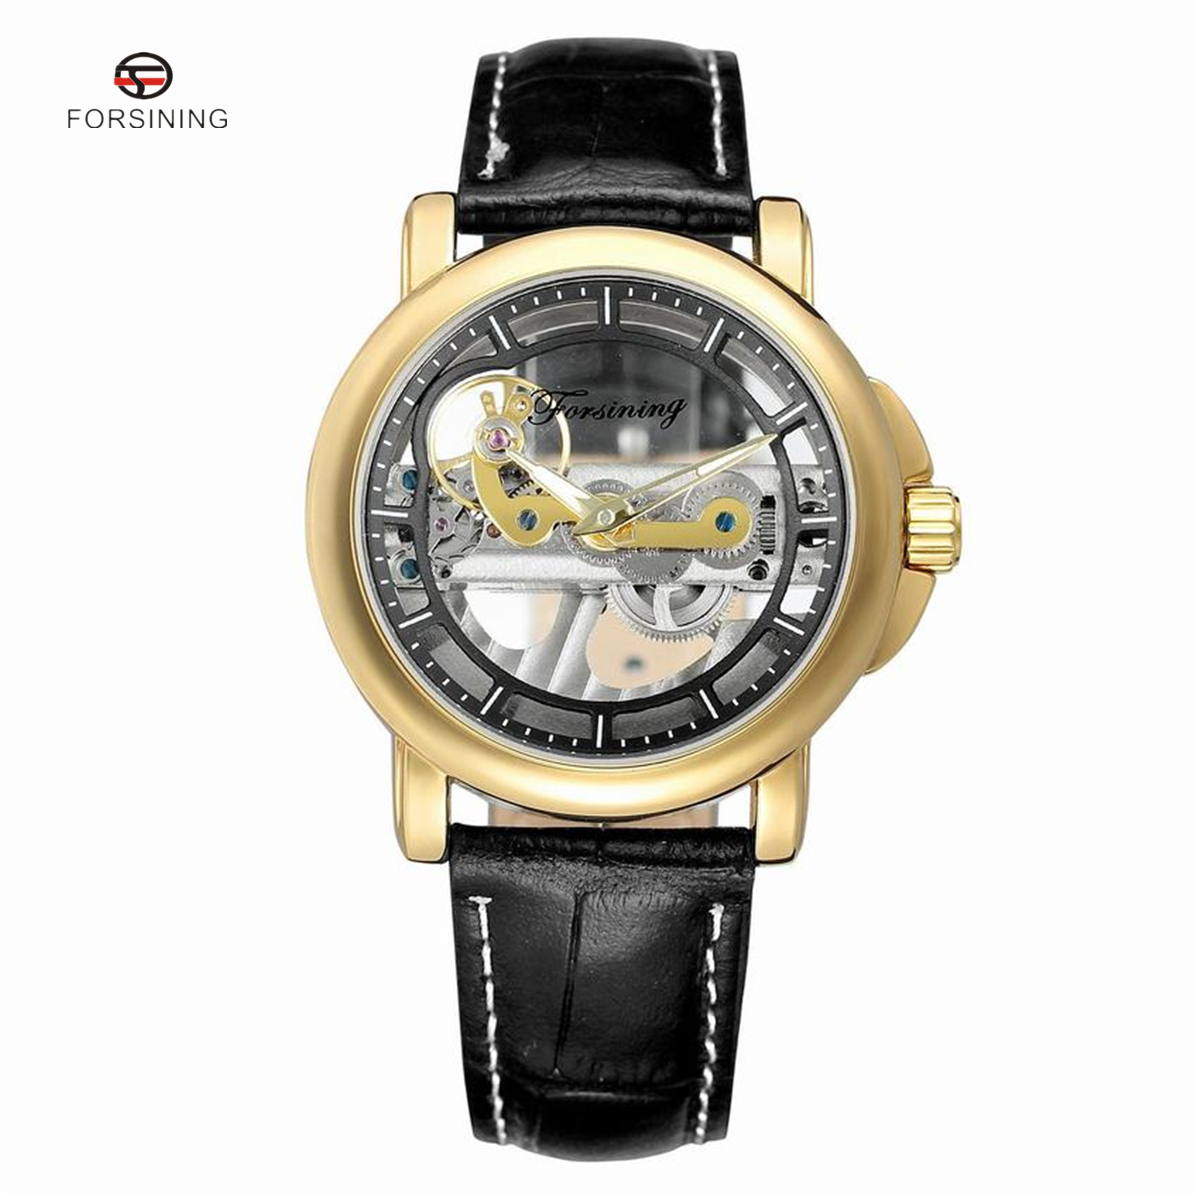 FORSINING Top Luxury Self Wind Automatic Mechanical Watches Men Gold Case Genuine Leather Skeleton Watches relogio masculino luxury gold automatic self wind men business casual watches stainless steel strap mechanical wrist luminous relogio masculino